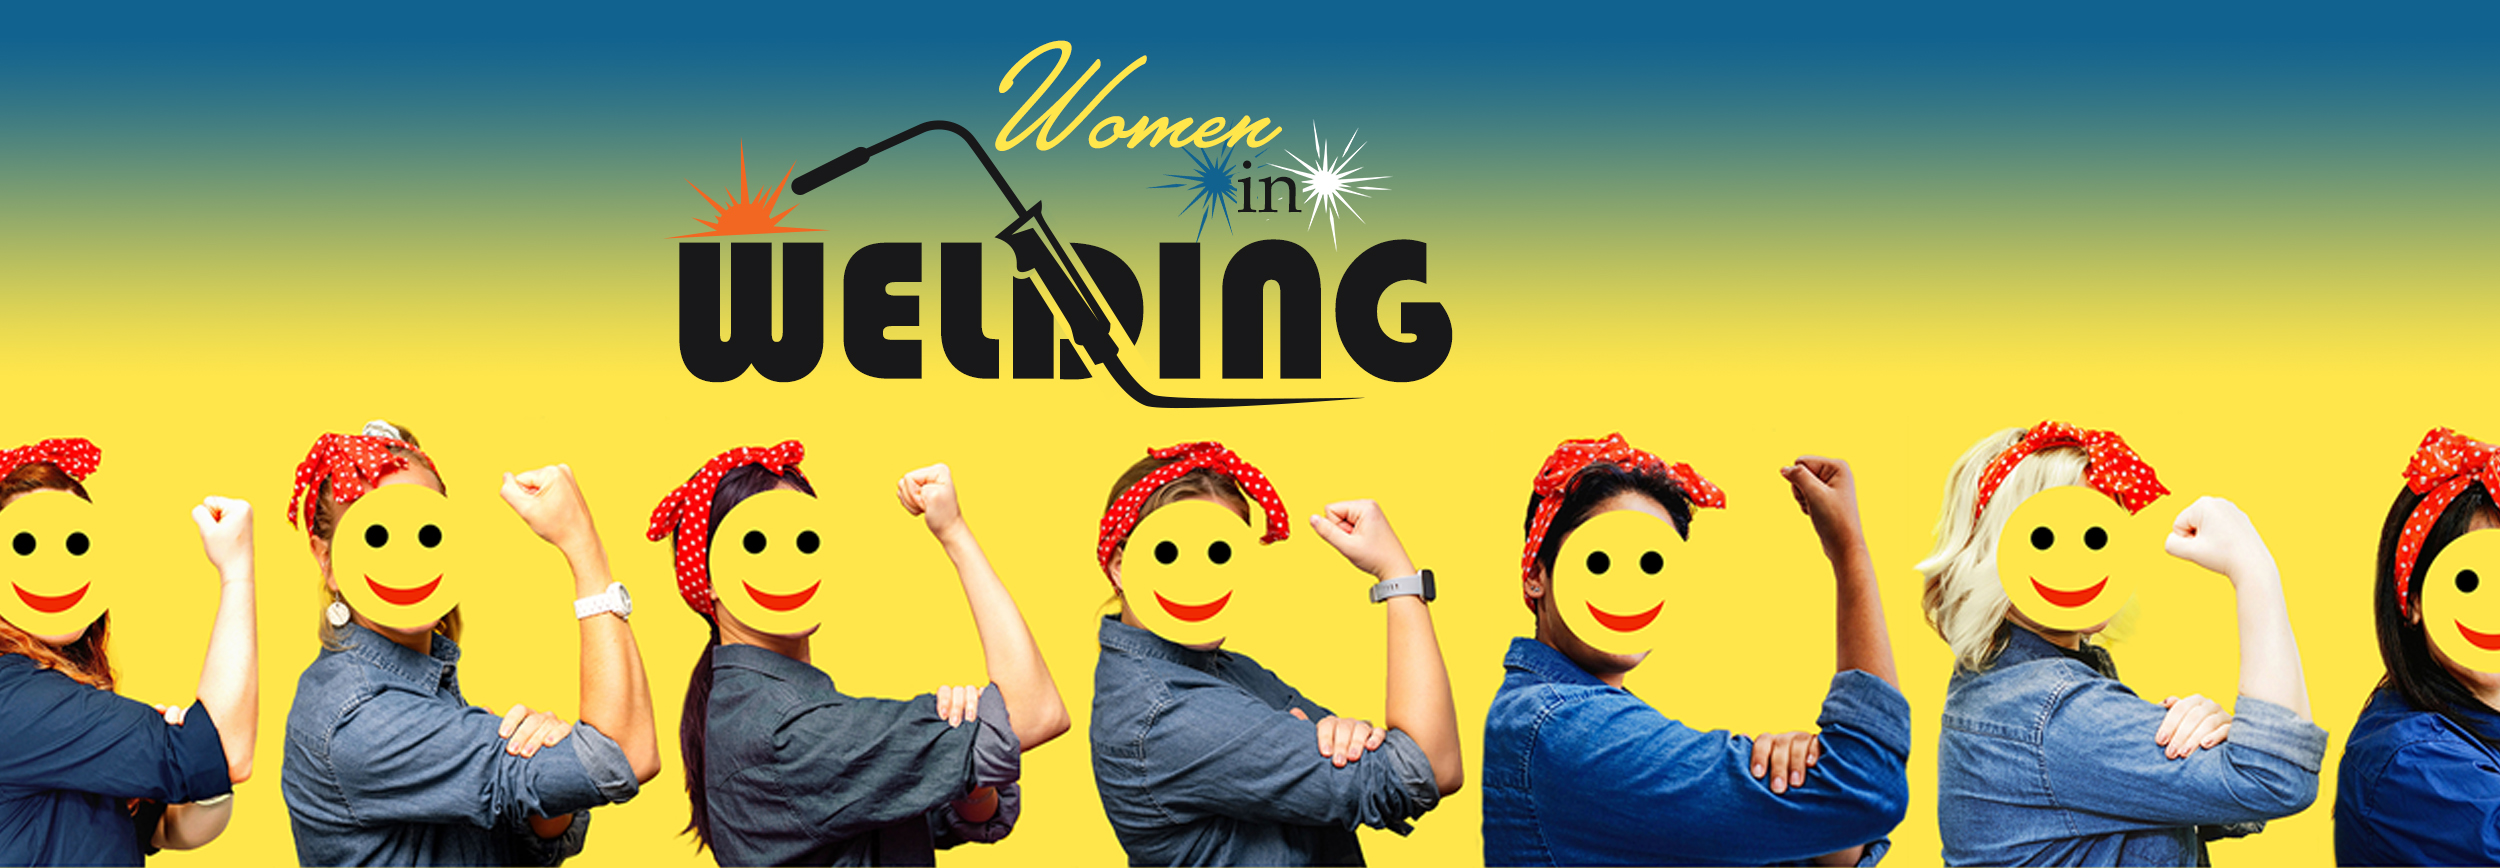 women in welding header graphic